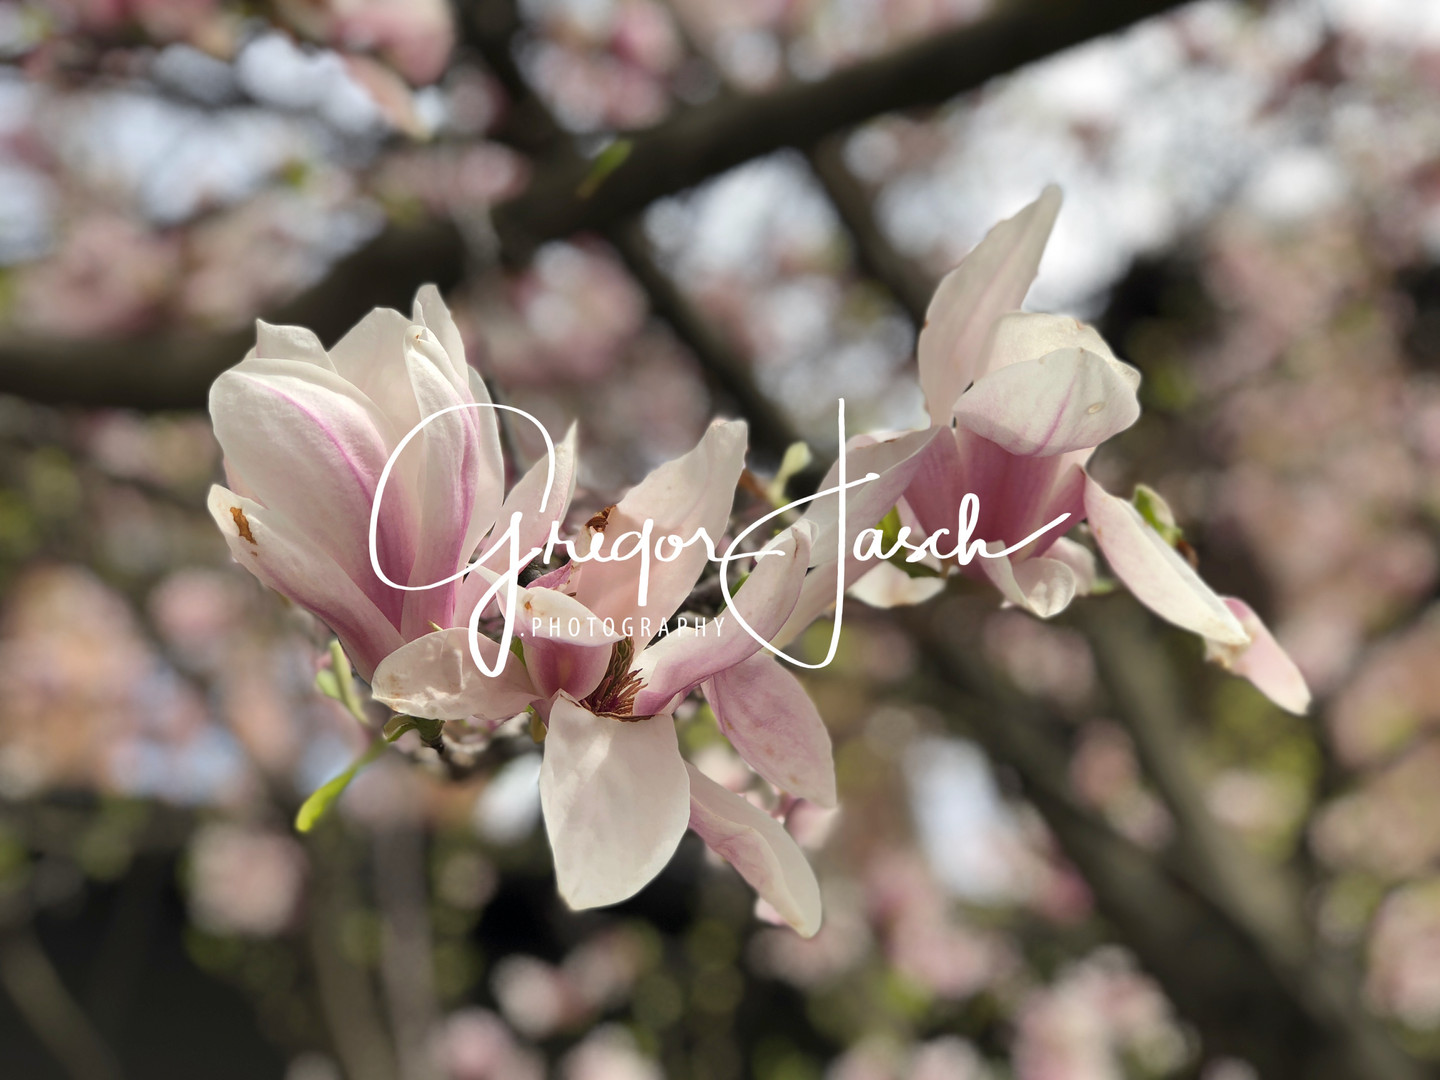 Buy_online_pictures_of_Cherry_Blossom_Flowers_gregorjasch.photography